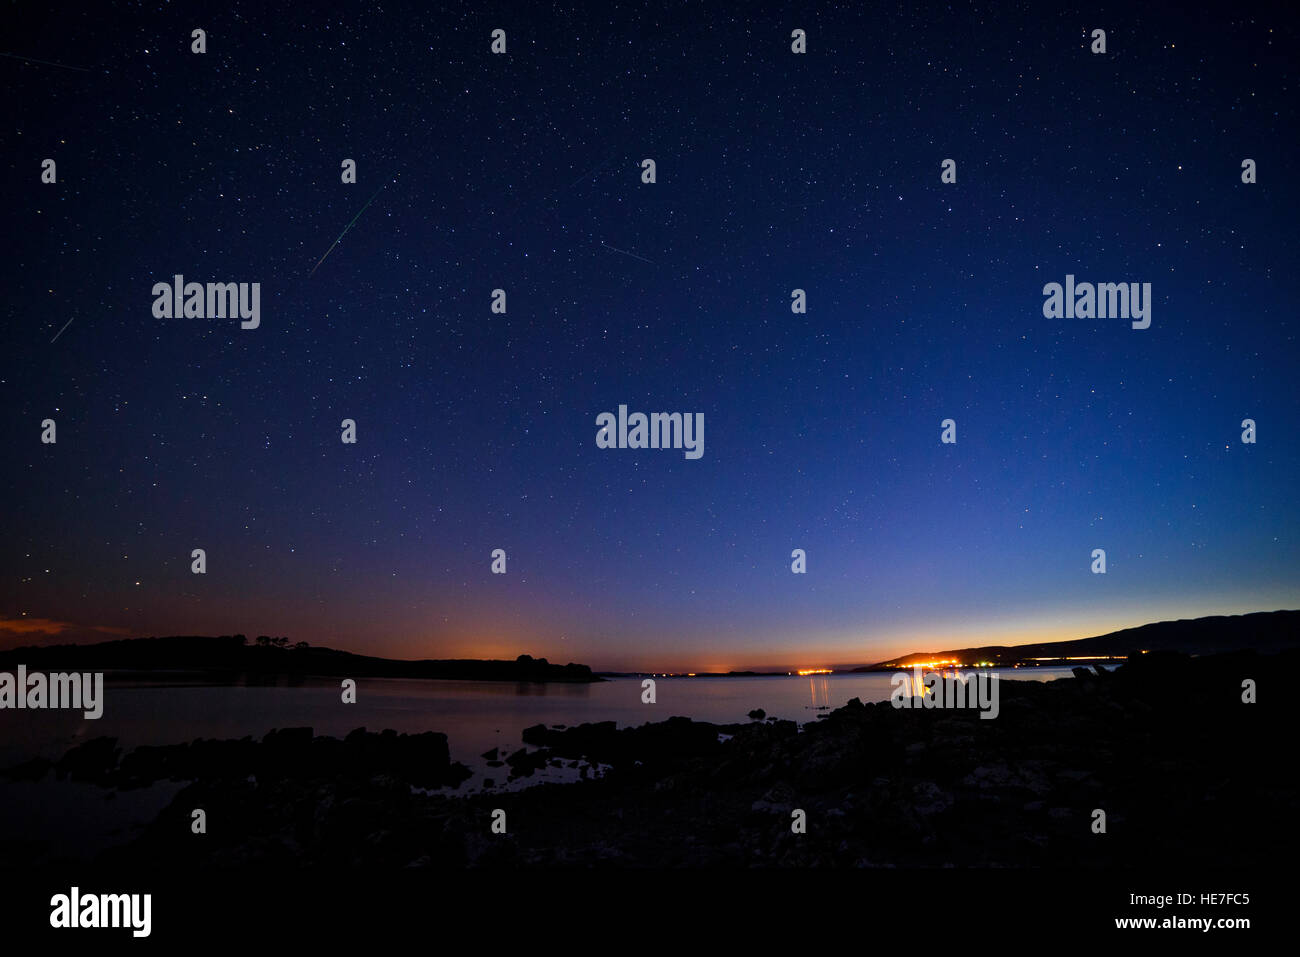 Stary night from Carrick, Solway Firth, near Gatehouse of Fleet, Dumfries & Galloway, Scotland - Stock Image